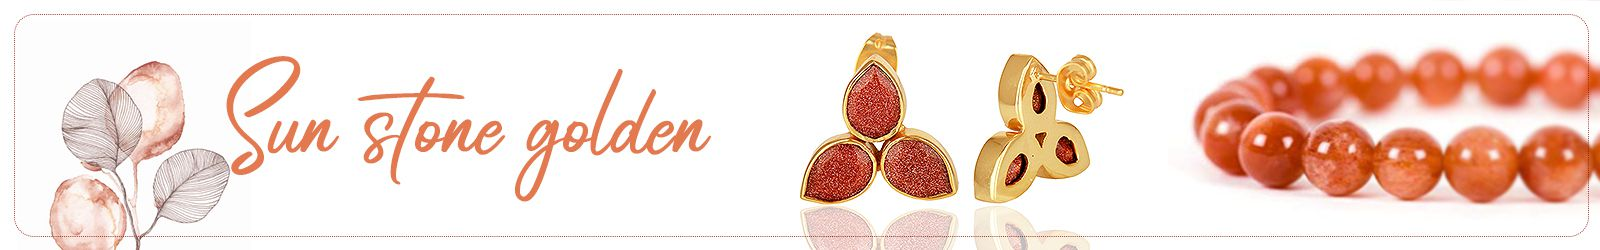 Golden Sun Stone Silver Jewelry Manufacturer and Exporter in India